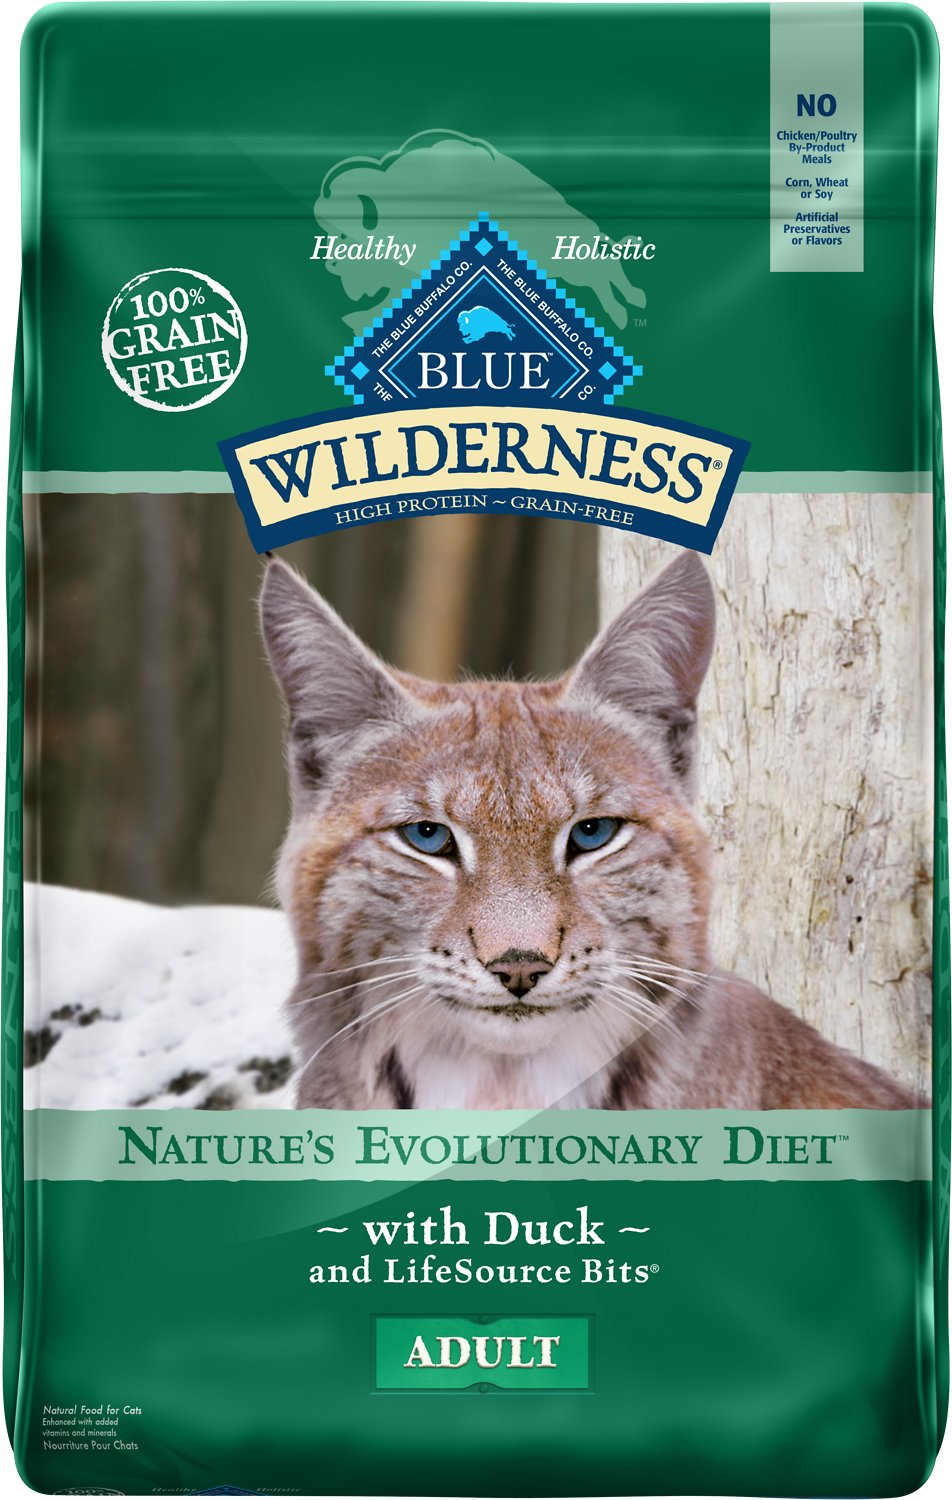 Blue Buffalo Wilderness Duck Recipe Grain-Free Dry Cat Food Image